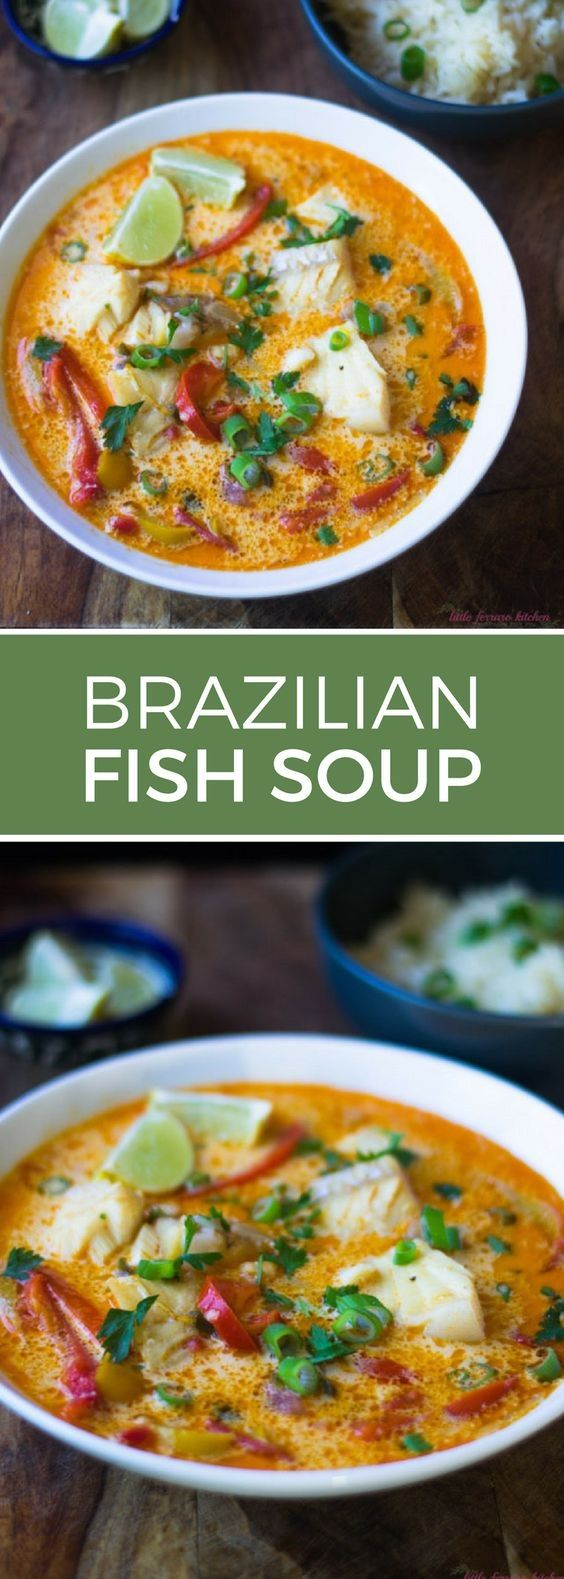 Brazilian Moqueca Fish Soup is Tasty !!! You must see the complete recipes.